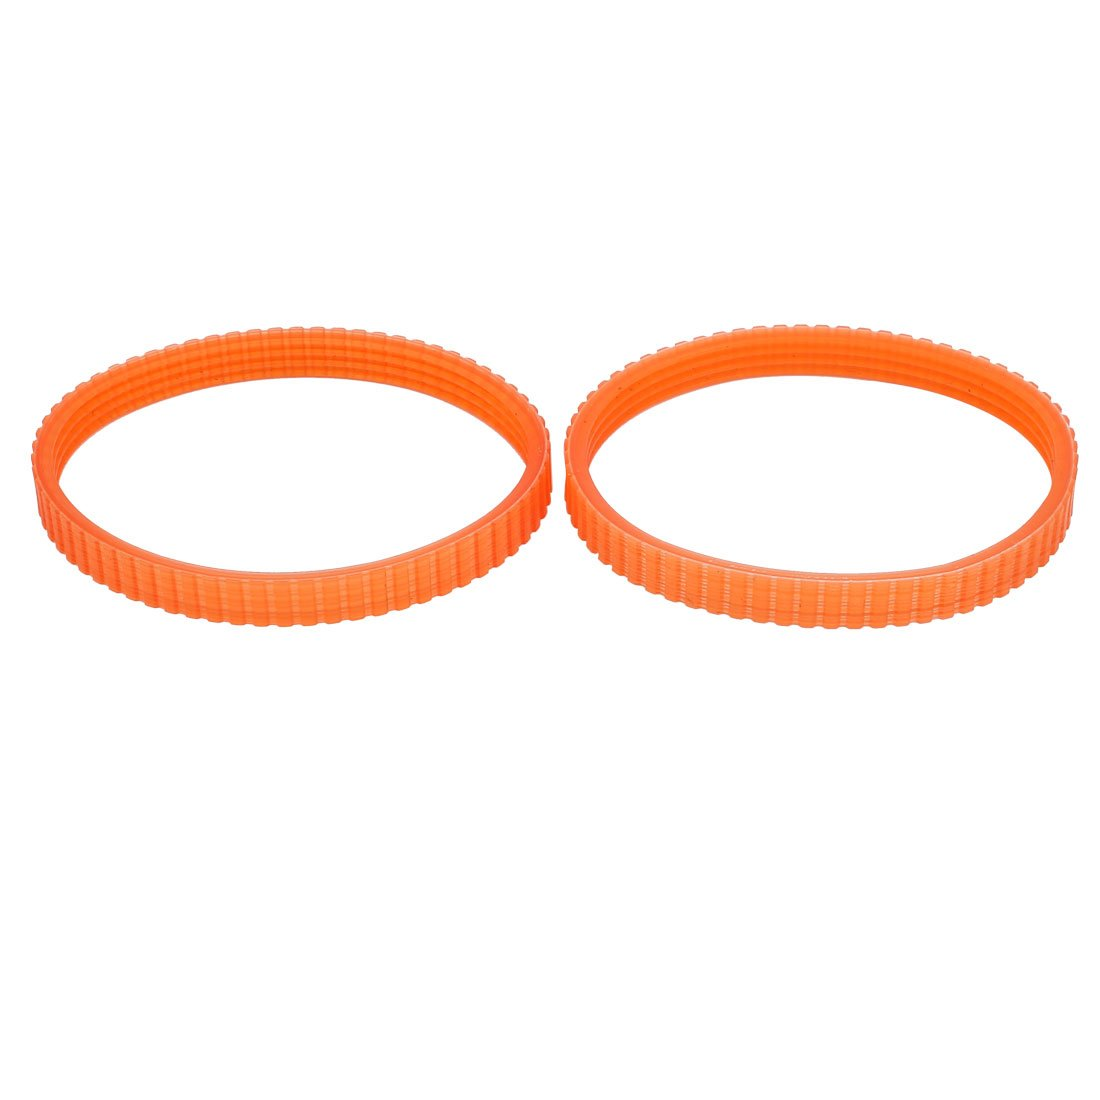 sourcingmap 2pcs 268mm Girth Rubber PU Double Sided Multi Timing Belt Orange a16041500ux0781